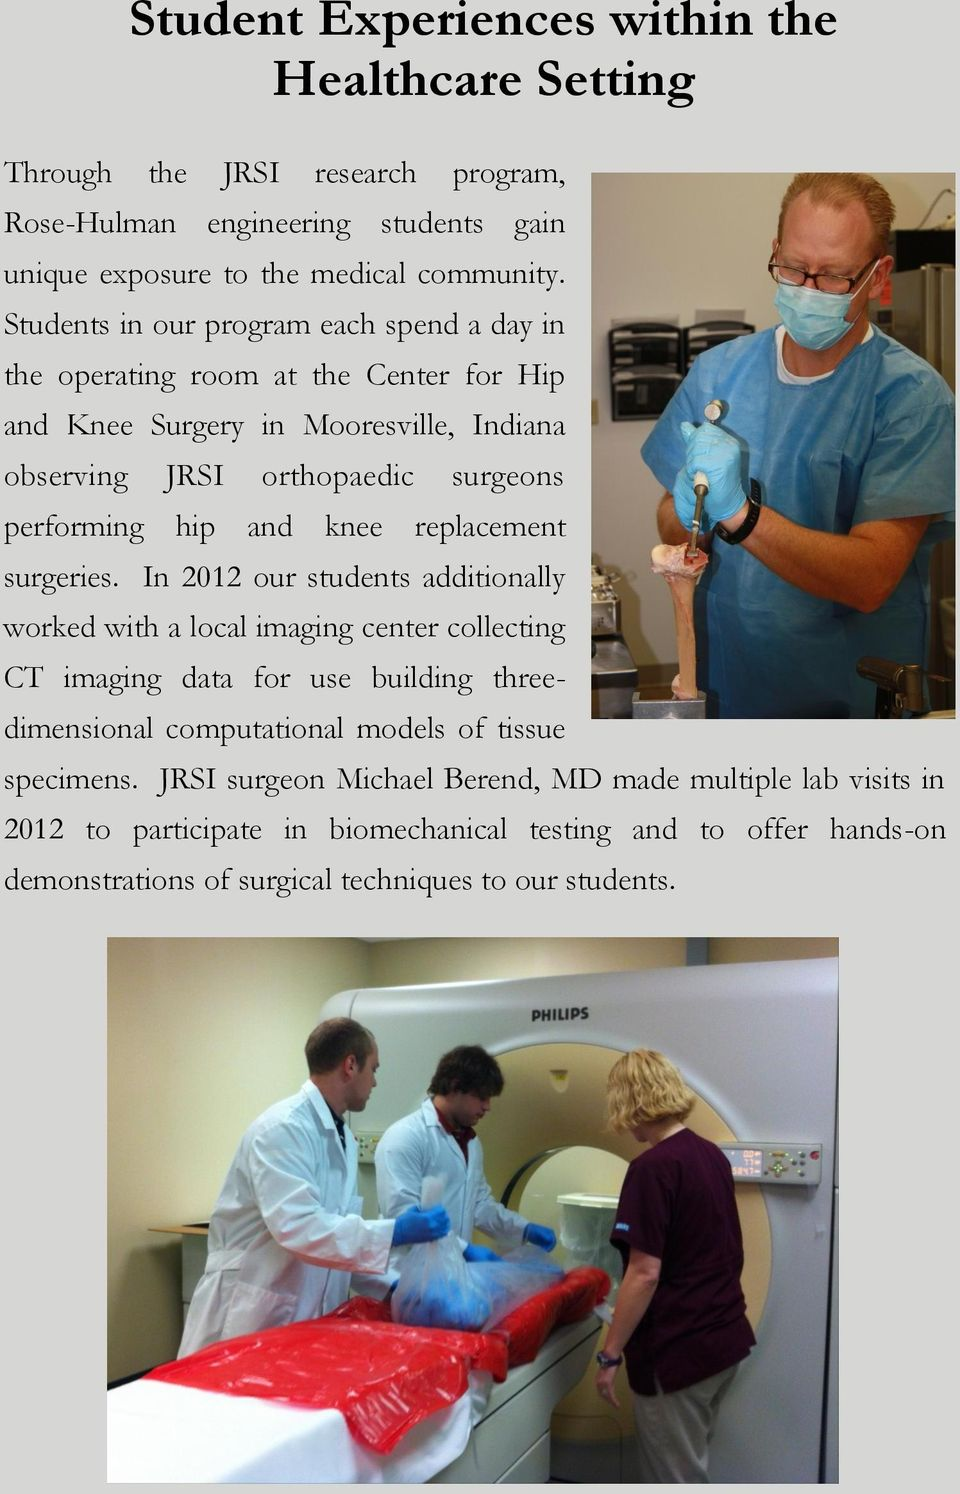 knee replacement surgeries.